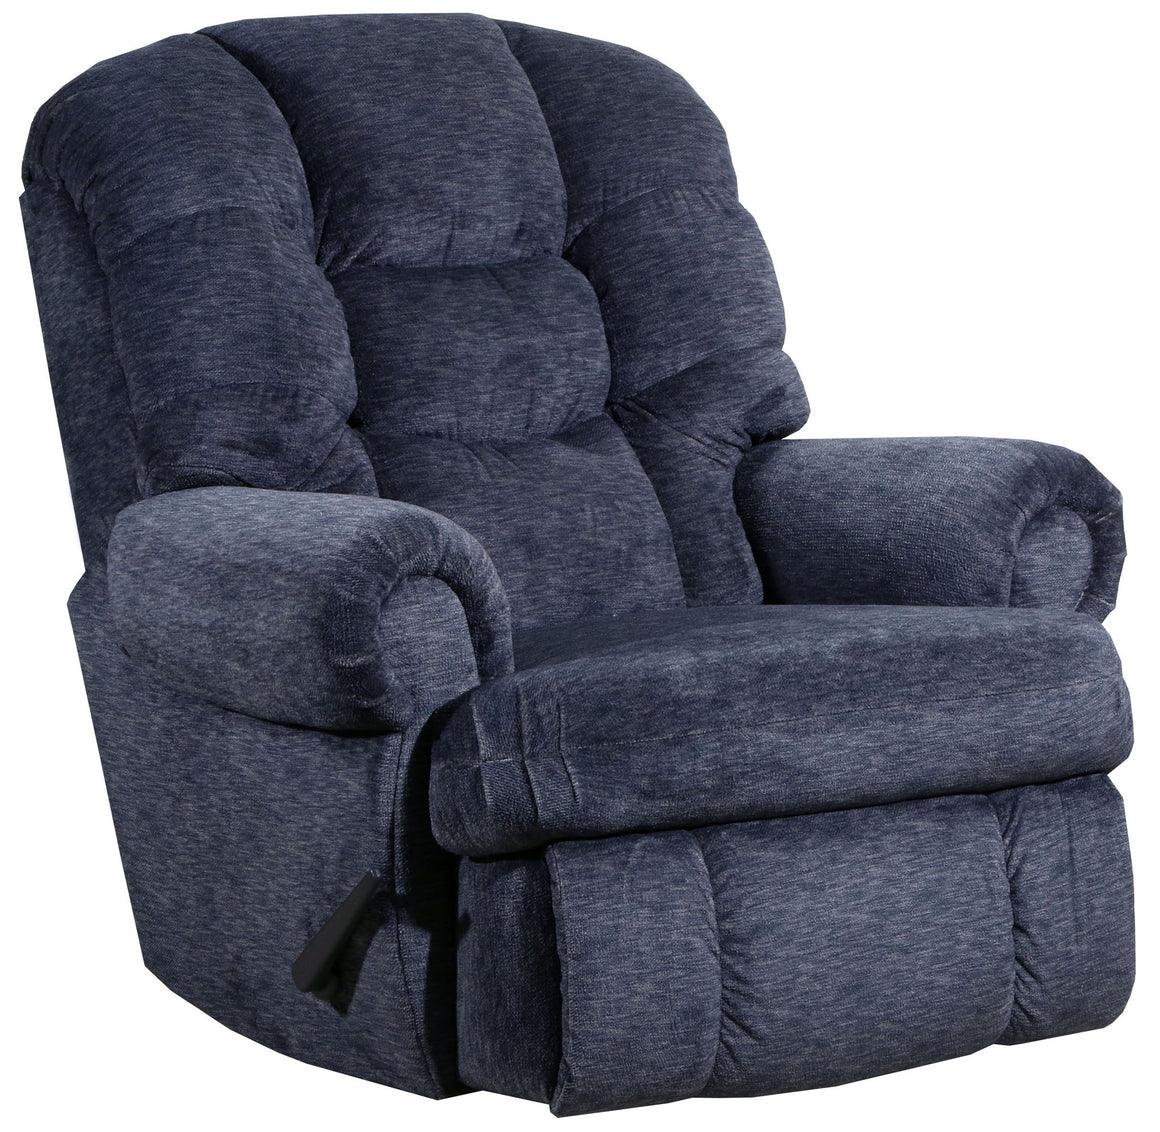 4501 Comfort King Chaise Wallsaver Recliner - Blue Depths